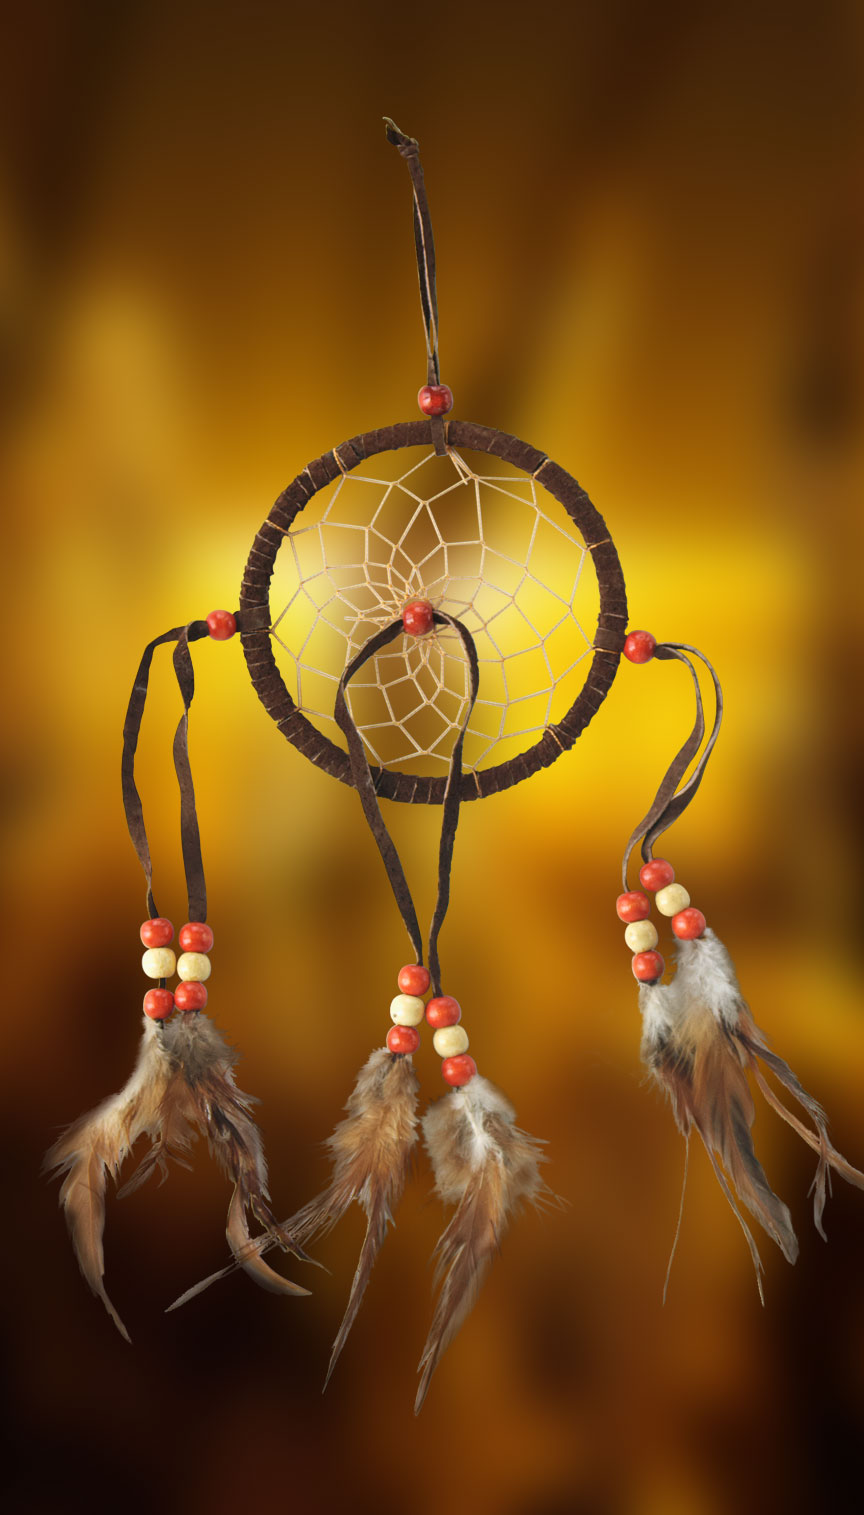 Shows an image of dreamcatcher owg005 on a scenic background